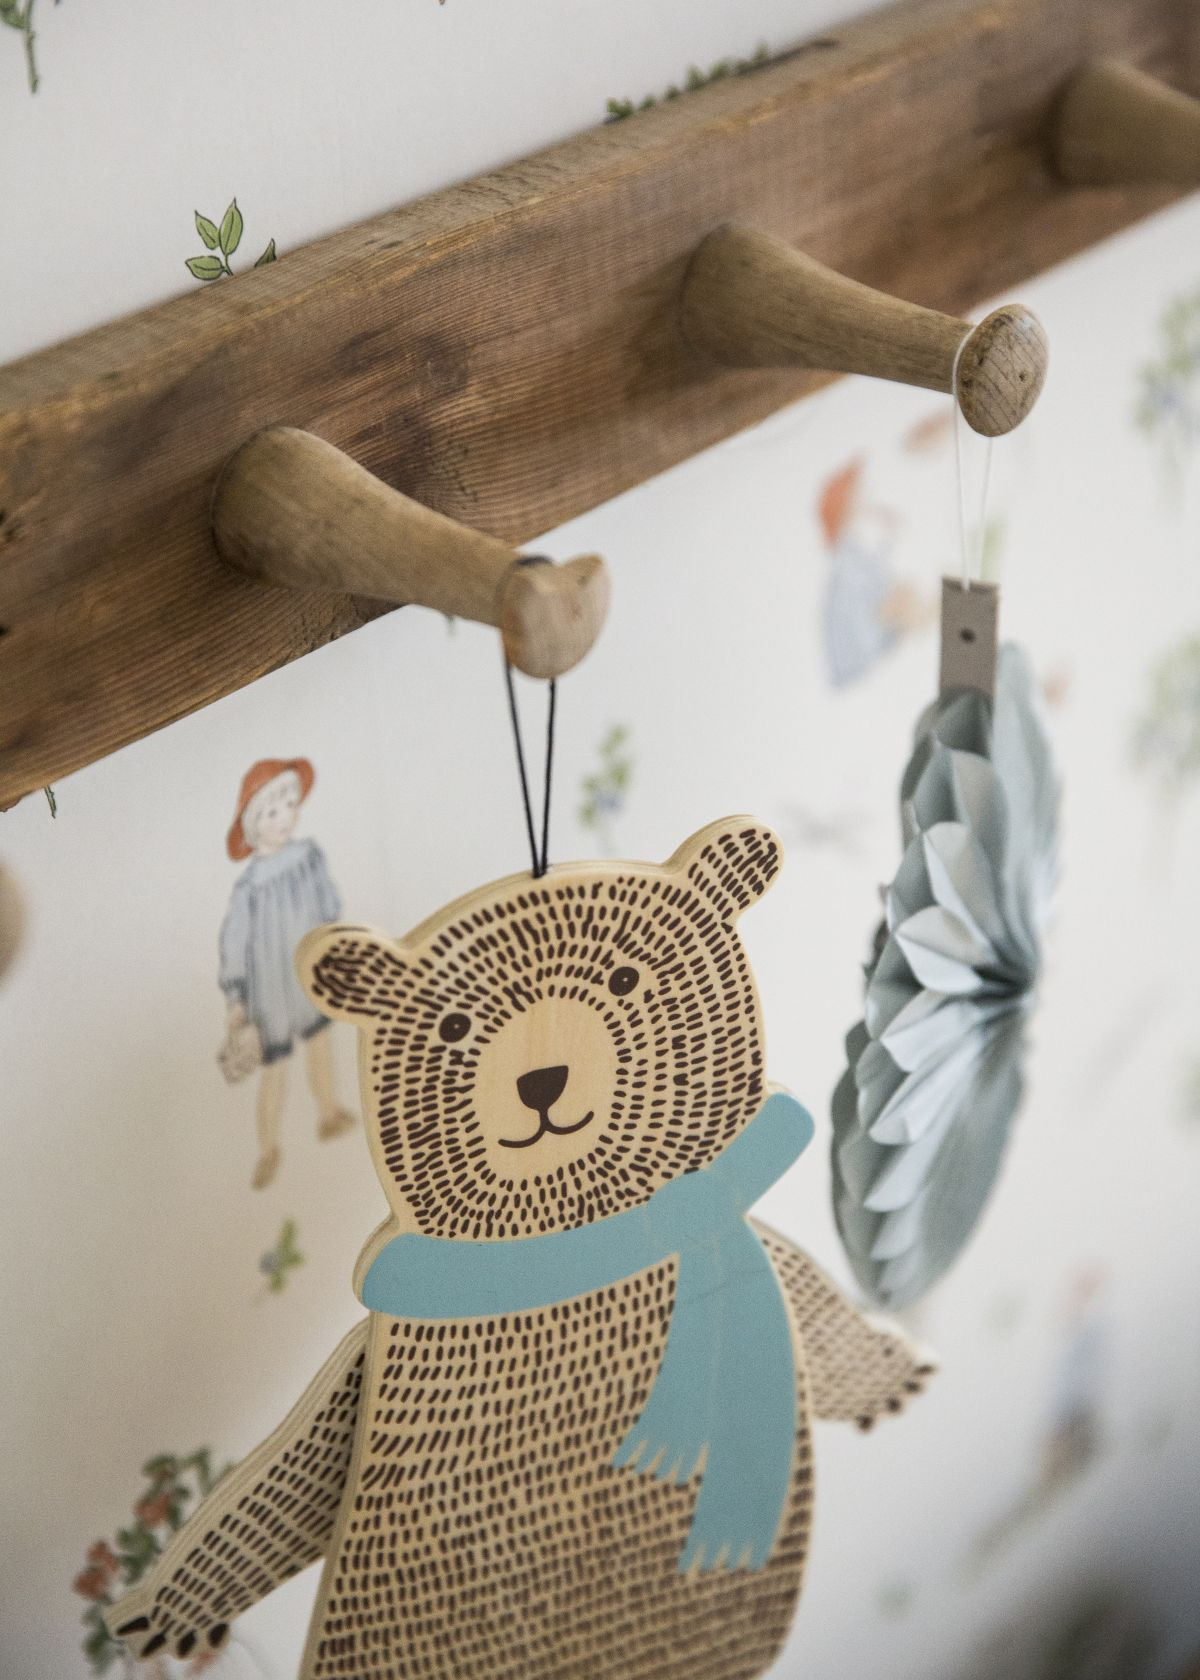 """faf8de425b8c """"Our customers are very conscious of – and care a lot about – their  interiors, and we are seeing a clear demand for design even in children's  rooms."""""""